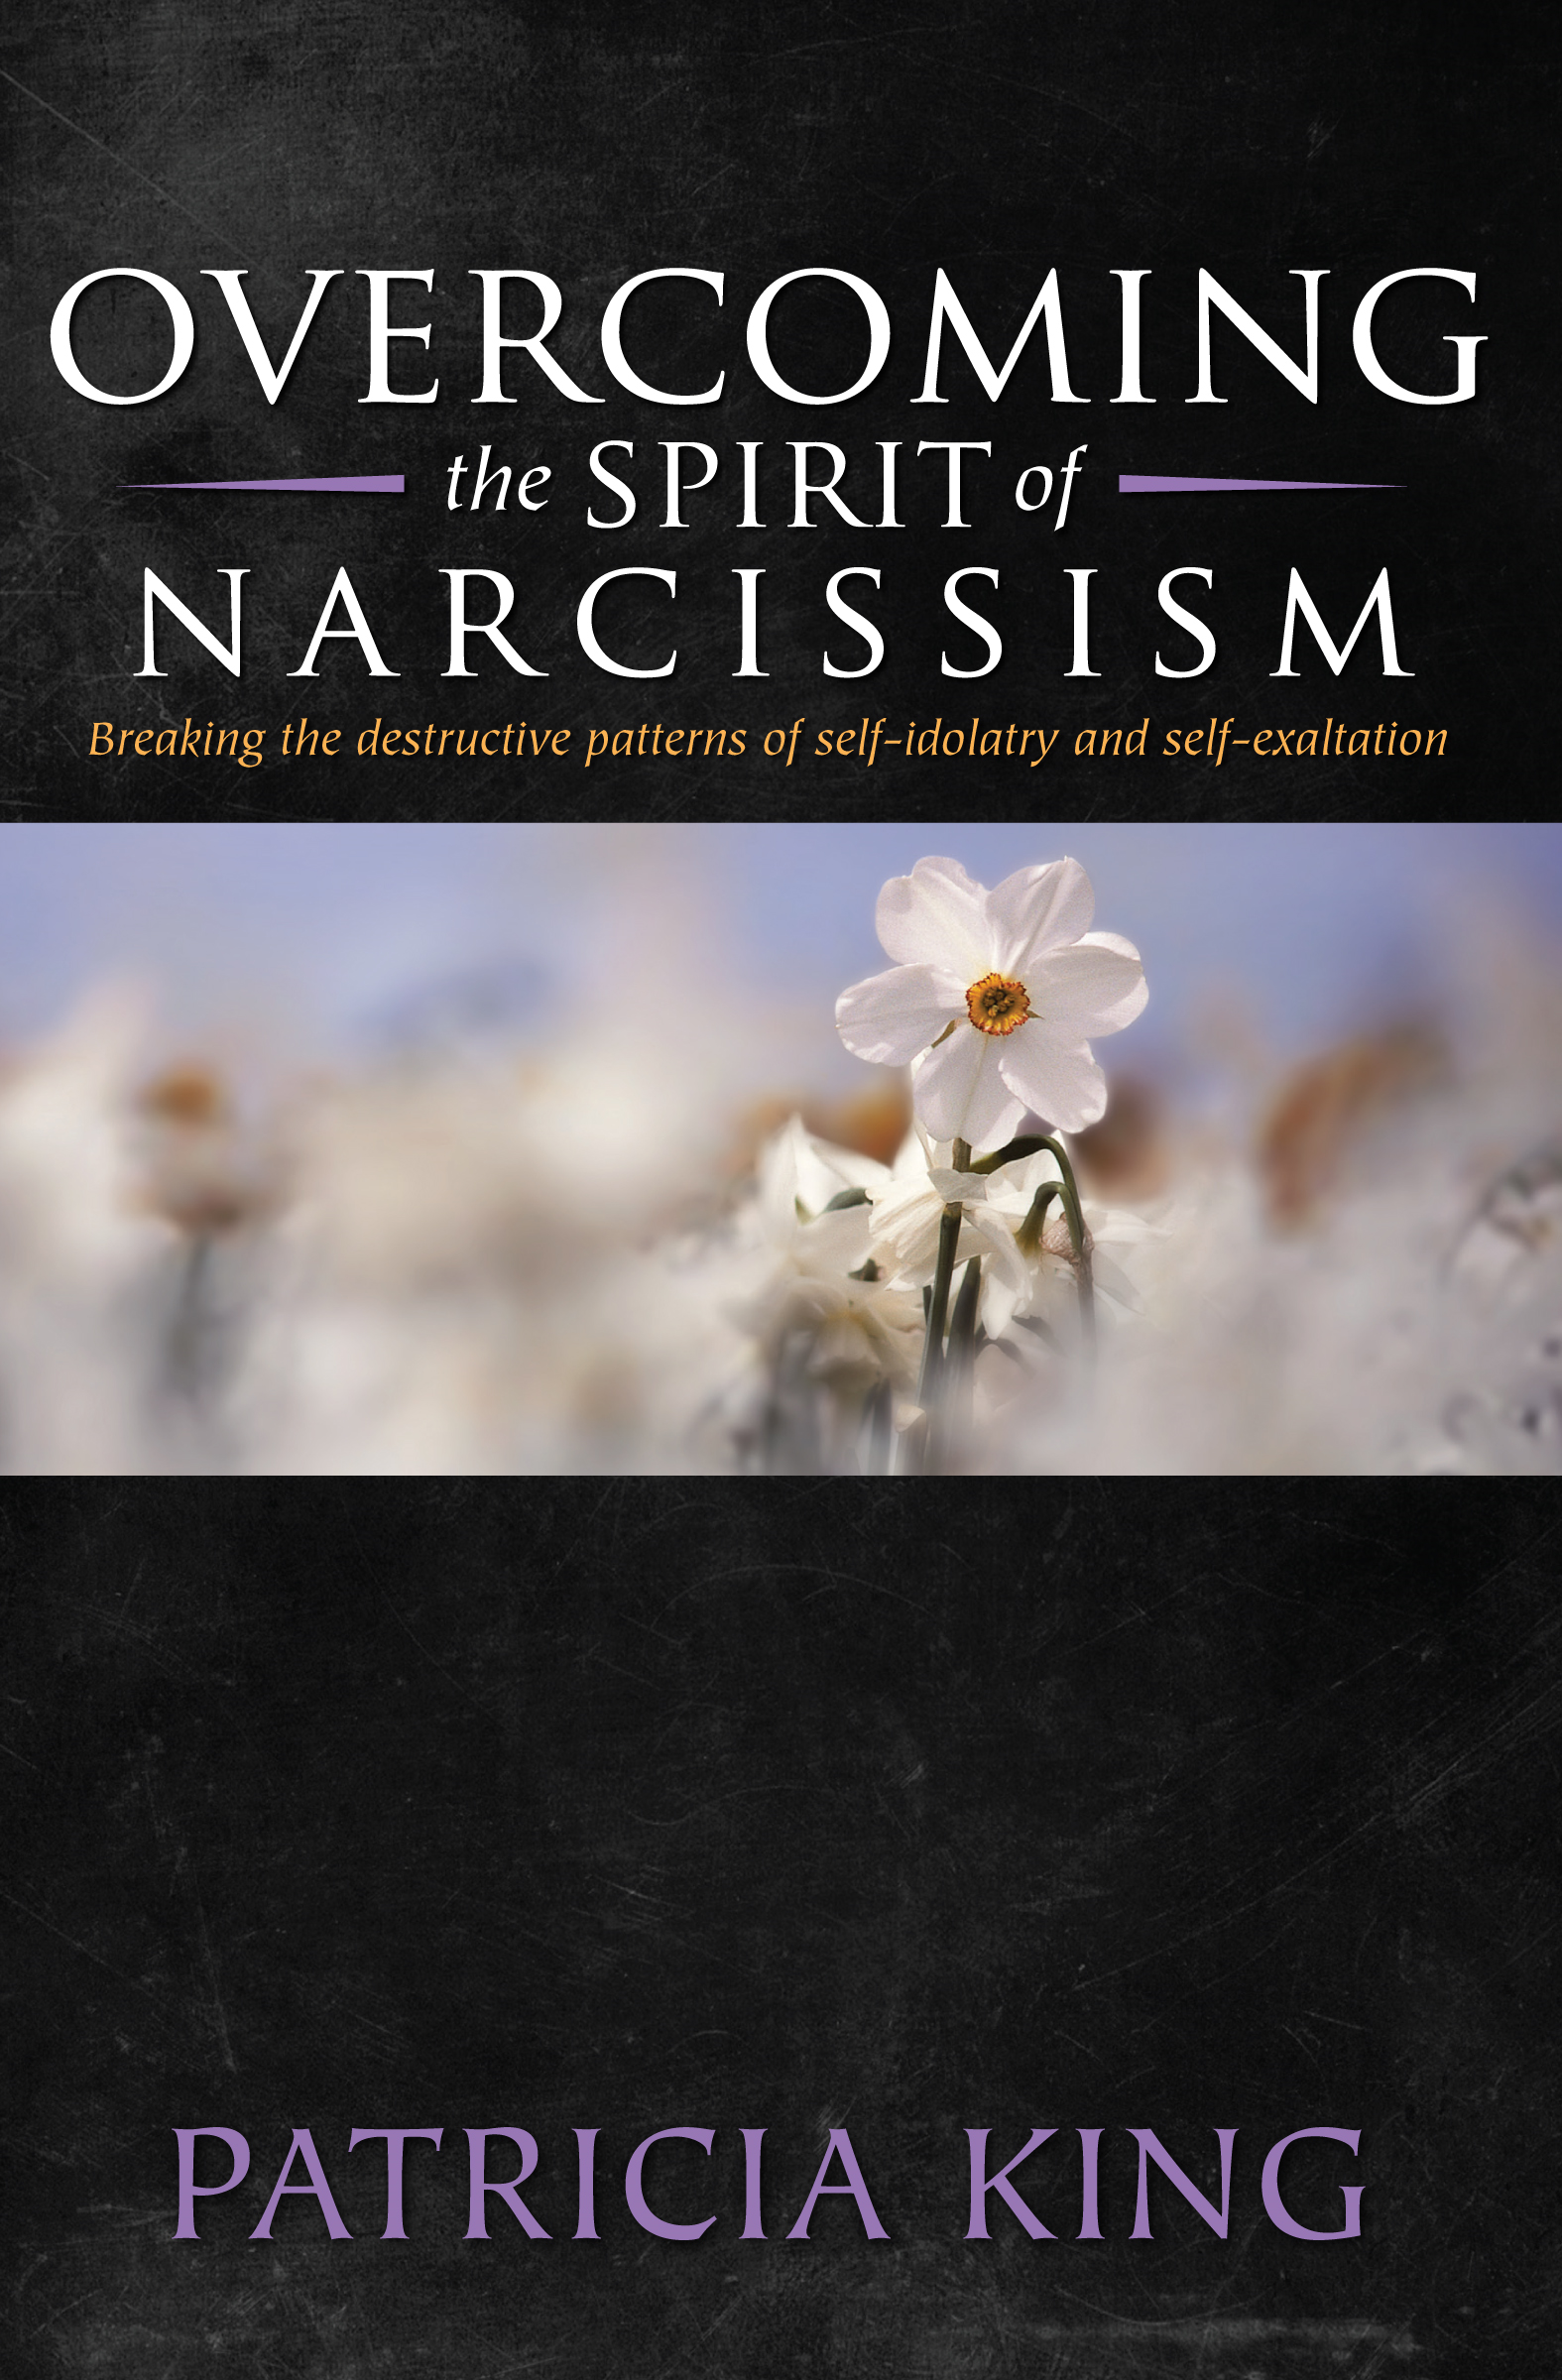 Overcoming the Spirit of Narcisissm: Breaking the Patterns of Self-idolatry and Self-exaltation By: Patricia King